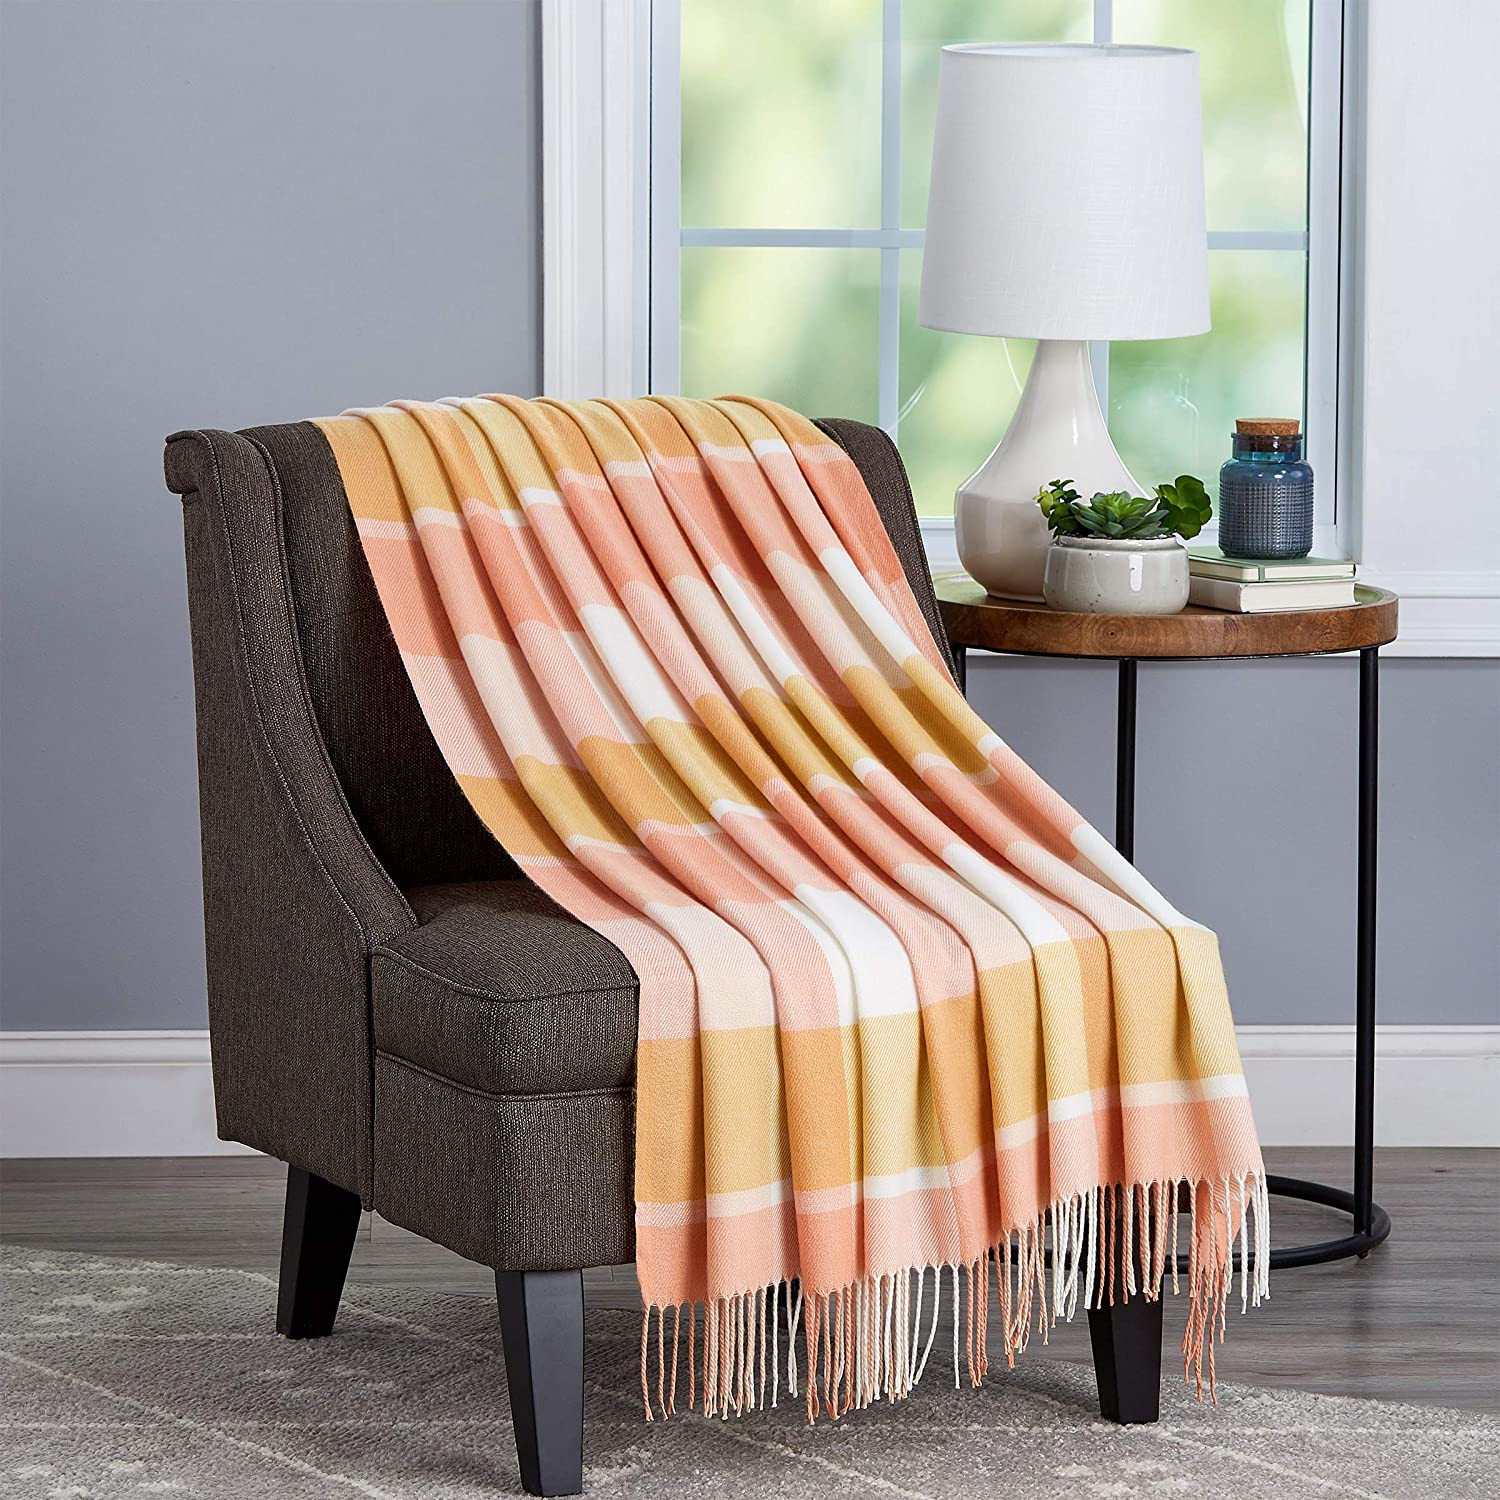 Lavish Home Collection Soft Blanket-Oversized, Luxuriously Fluffy, Vintage Look and Cashmere-Like Woven Acrylic - Stylish Throws, Desert Blush Plaid